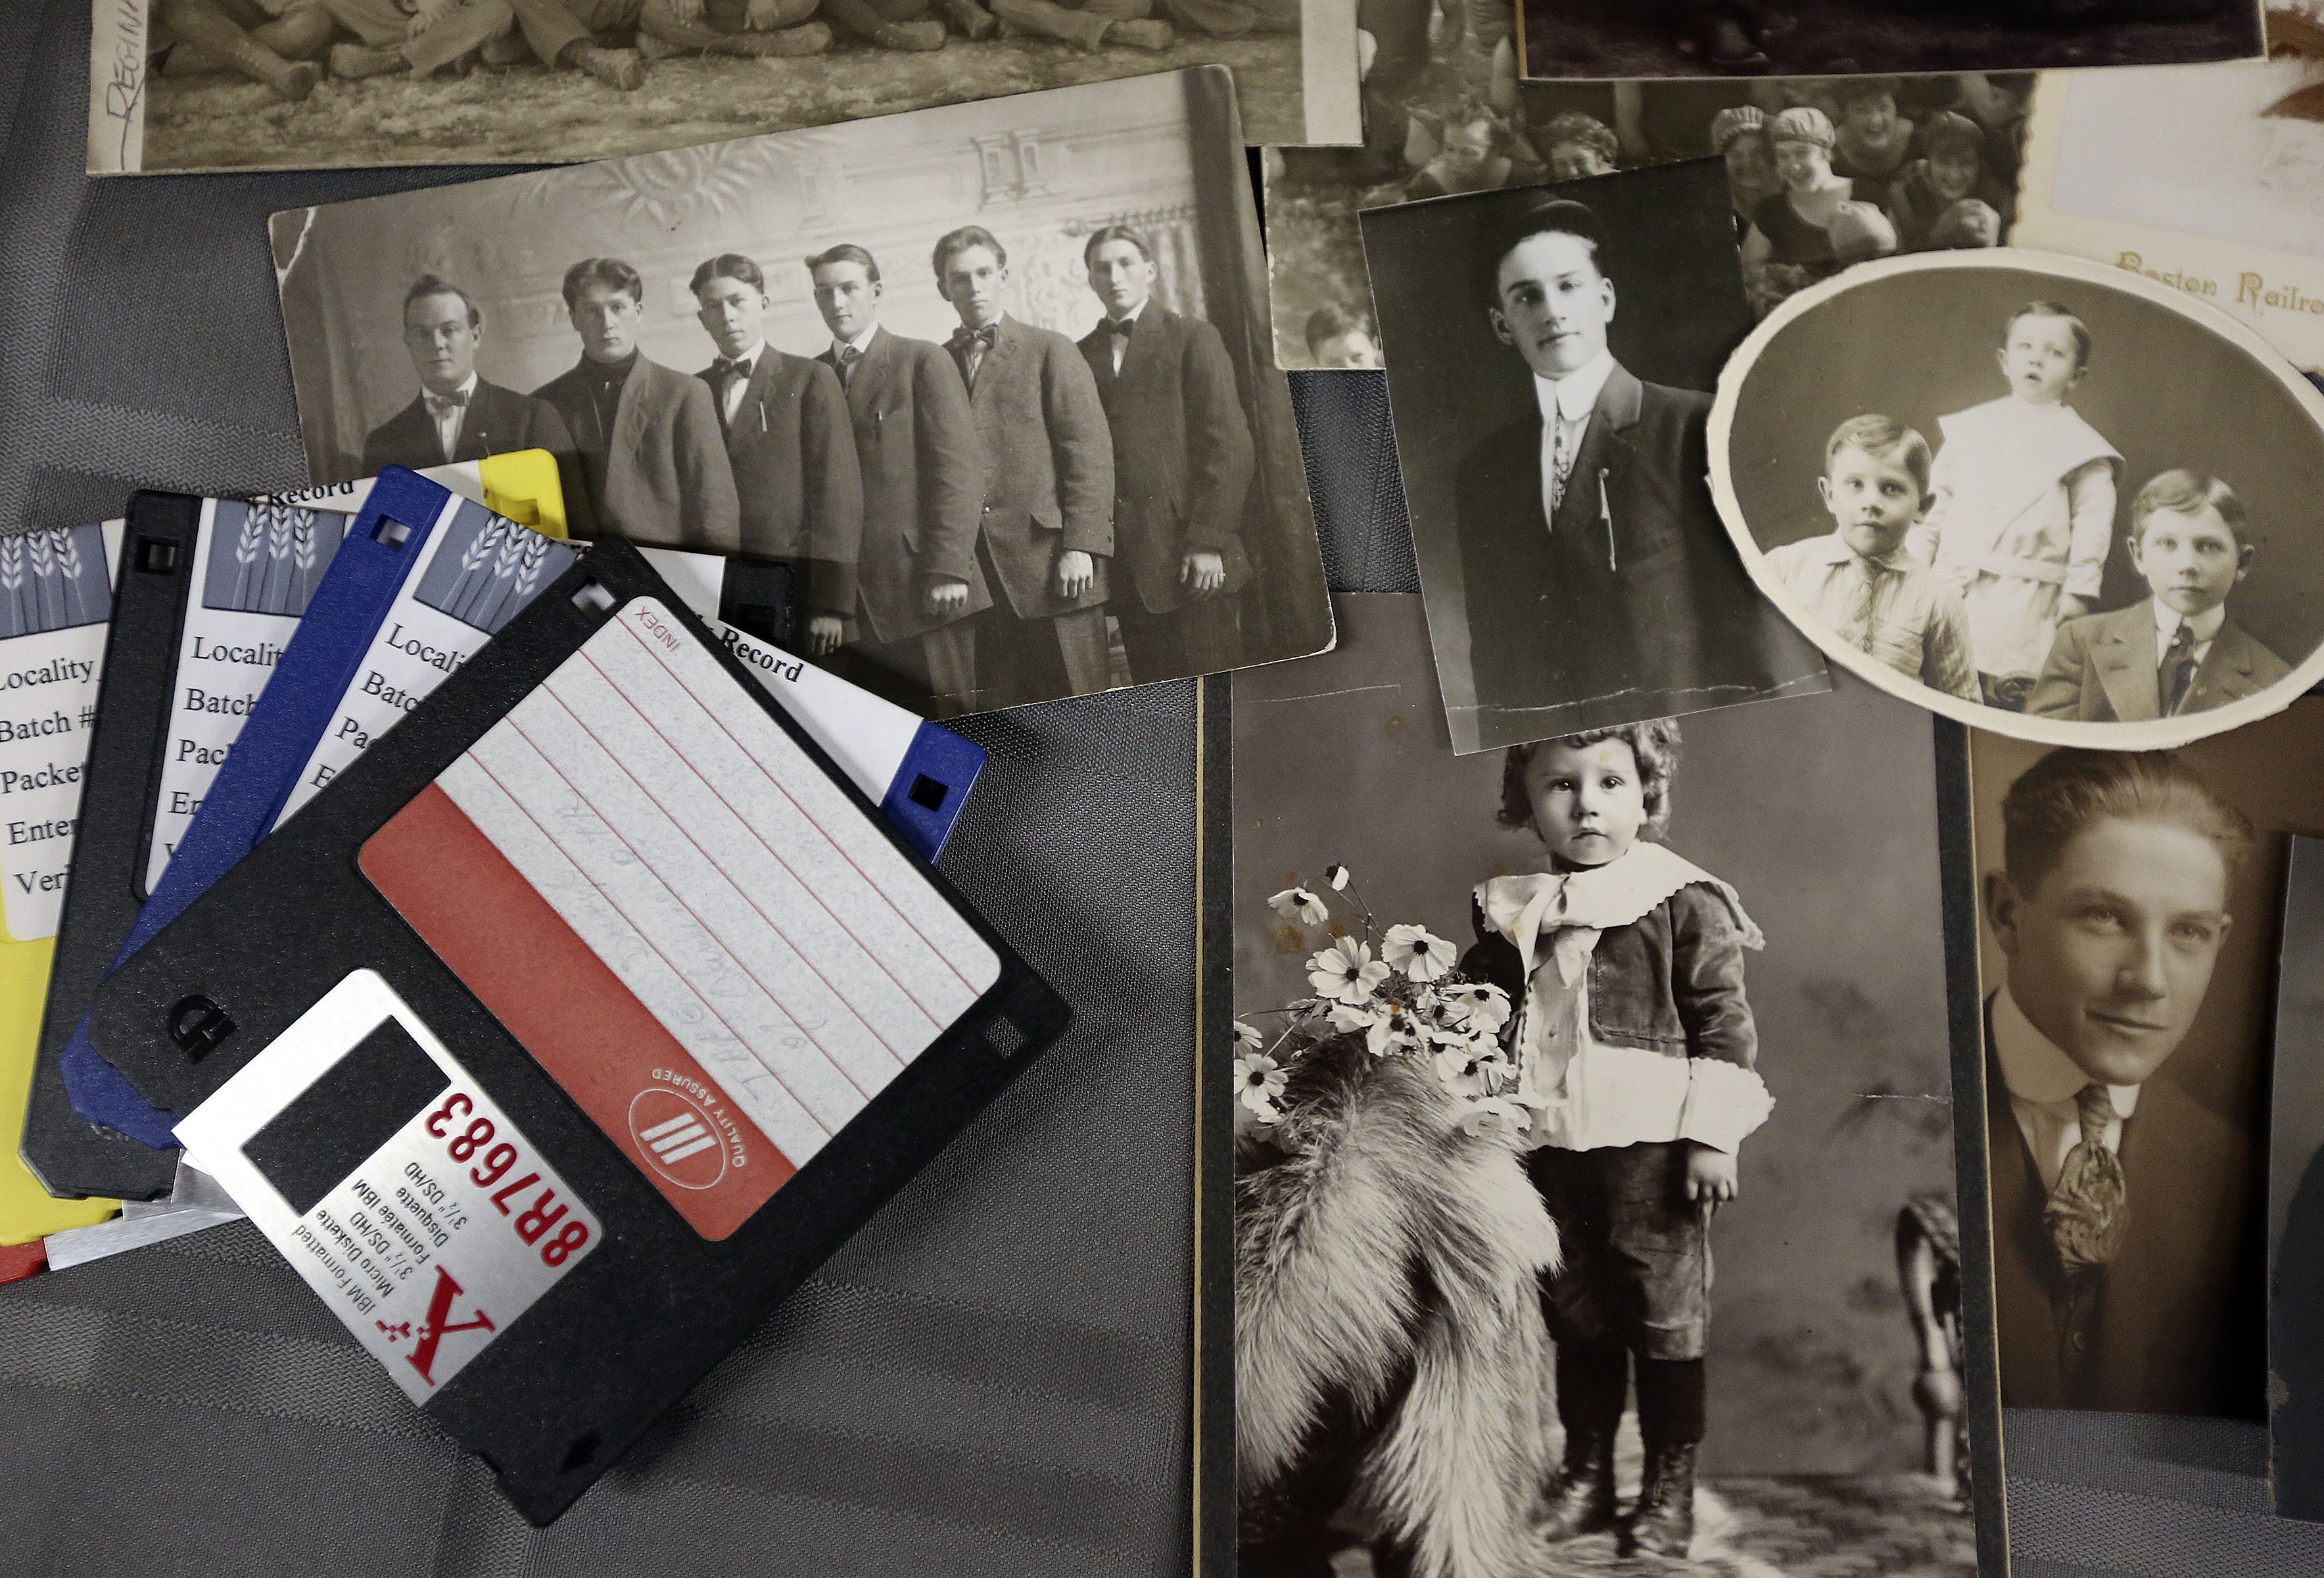 Display of historical photos and hard disks during the FamilySearch 125th anniversary celebration at the Family History Library in Salt Lake City on Wednesday, Nov. 13, 2019.